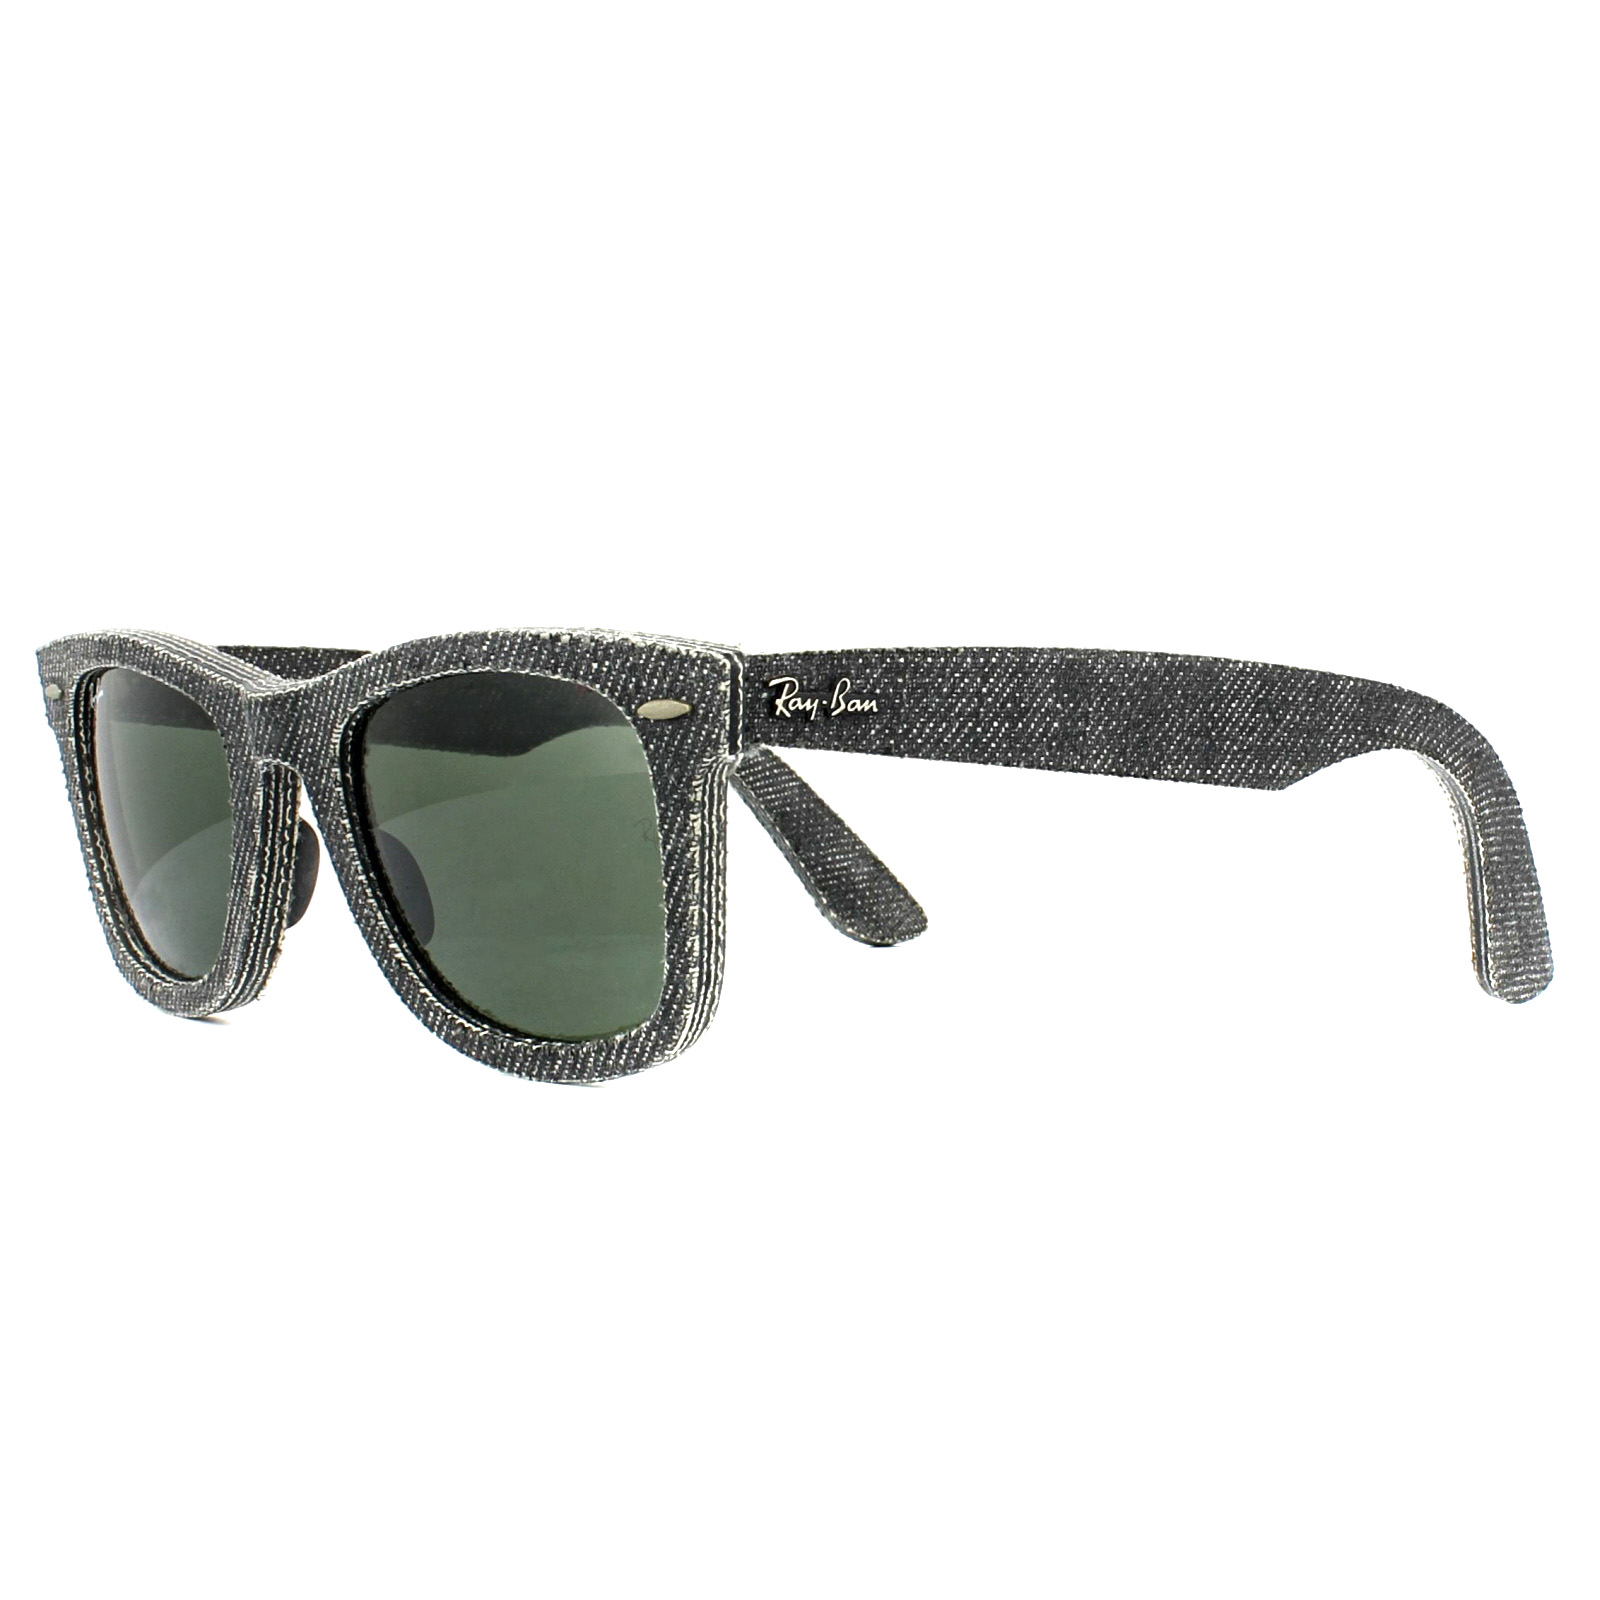 87a9c03eea Sentinel Ray-Ban Sunglasses Wayfarer 2140 1162 Denim Black Green 50mm Medium